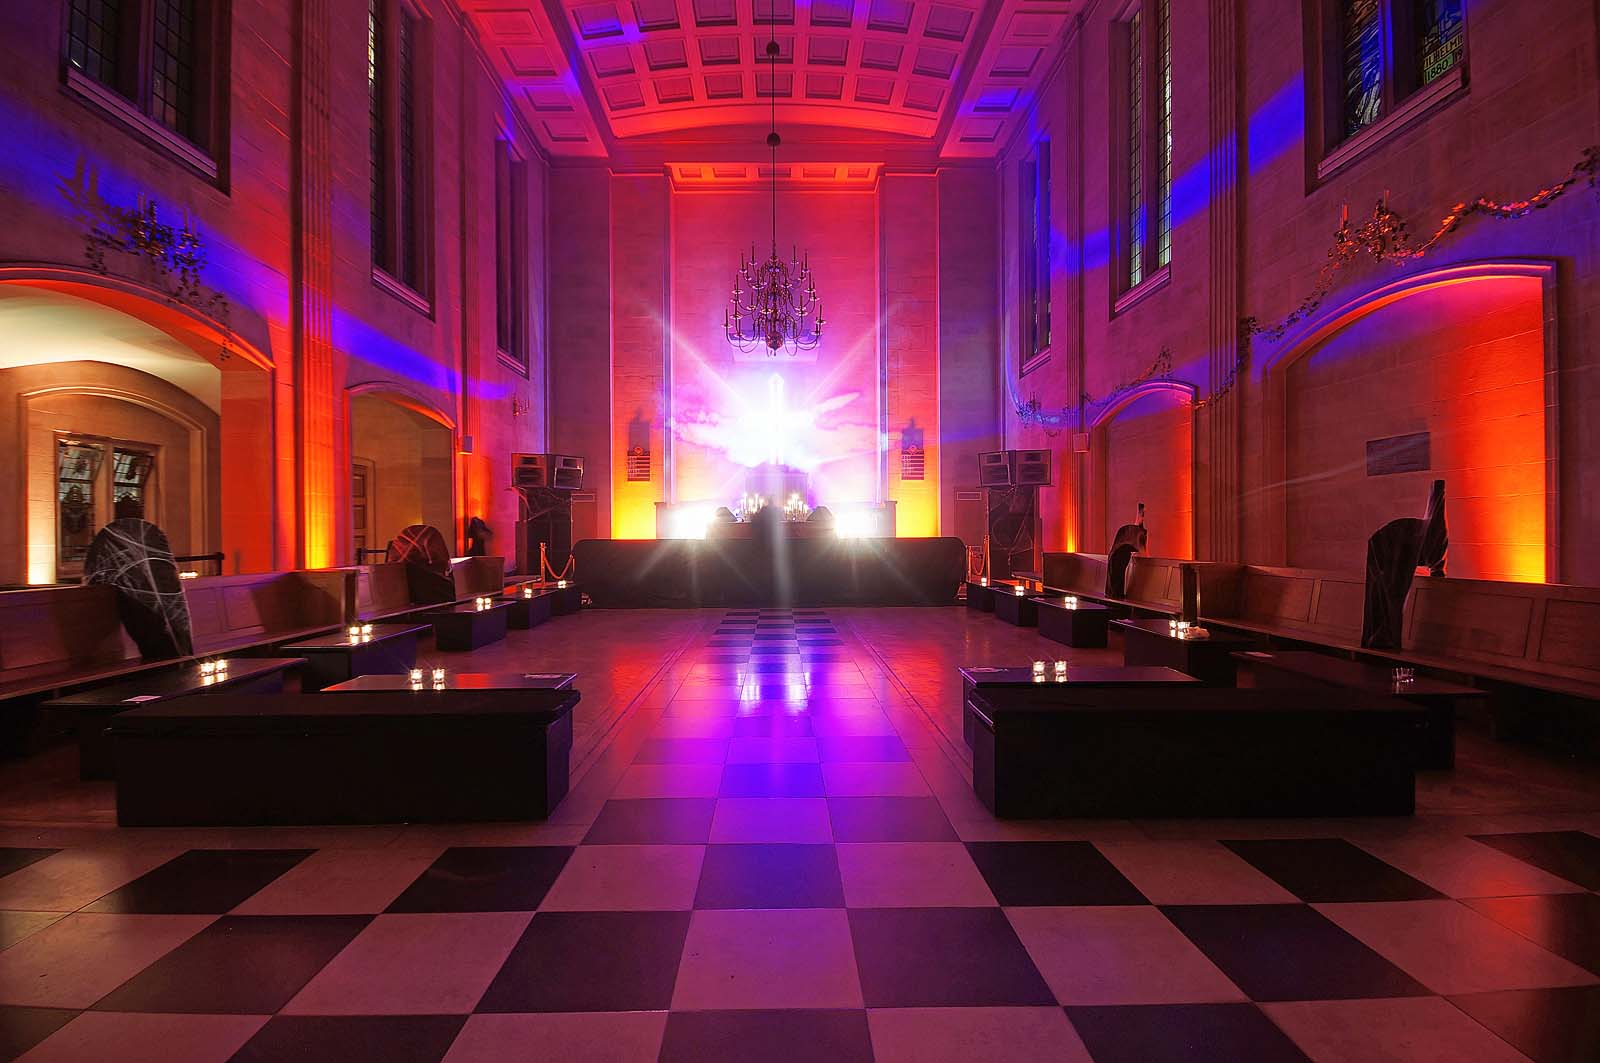 Dancefloor space at City of London event venue The Dutch Hall